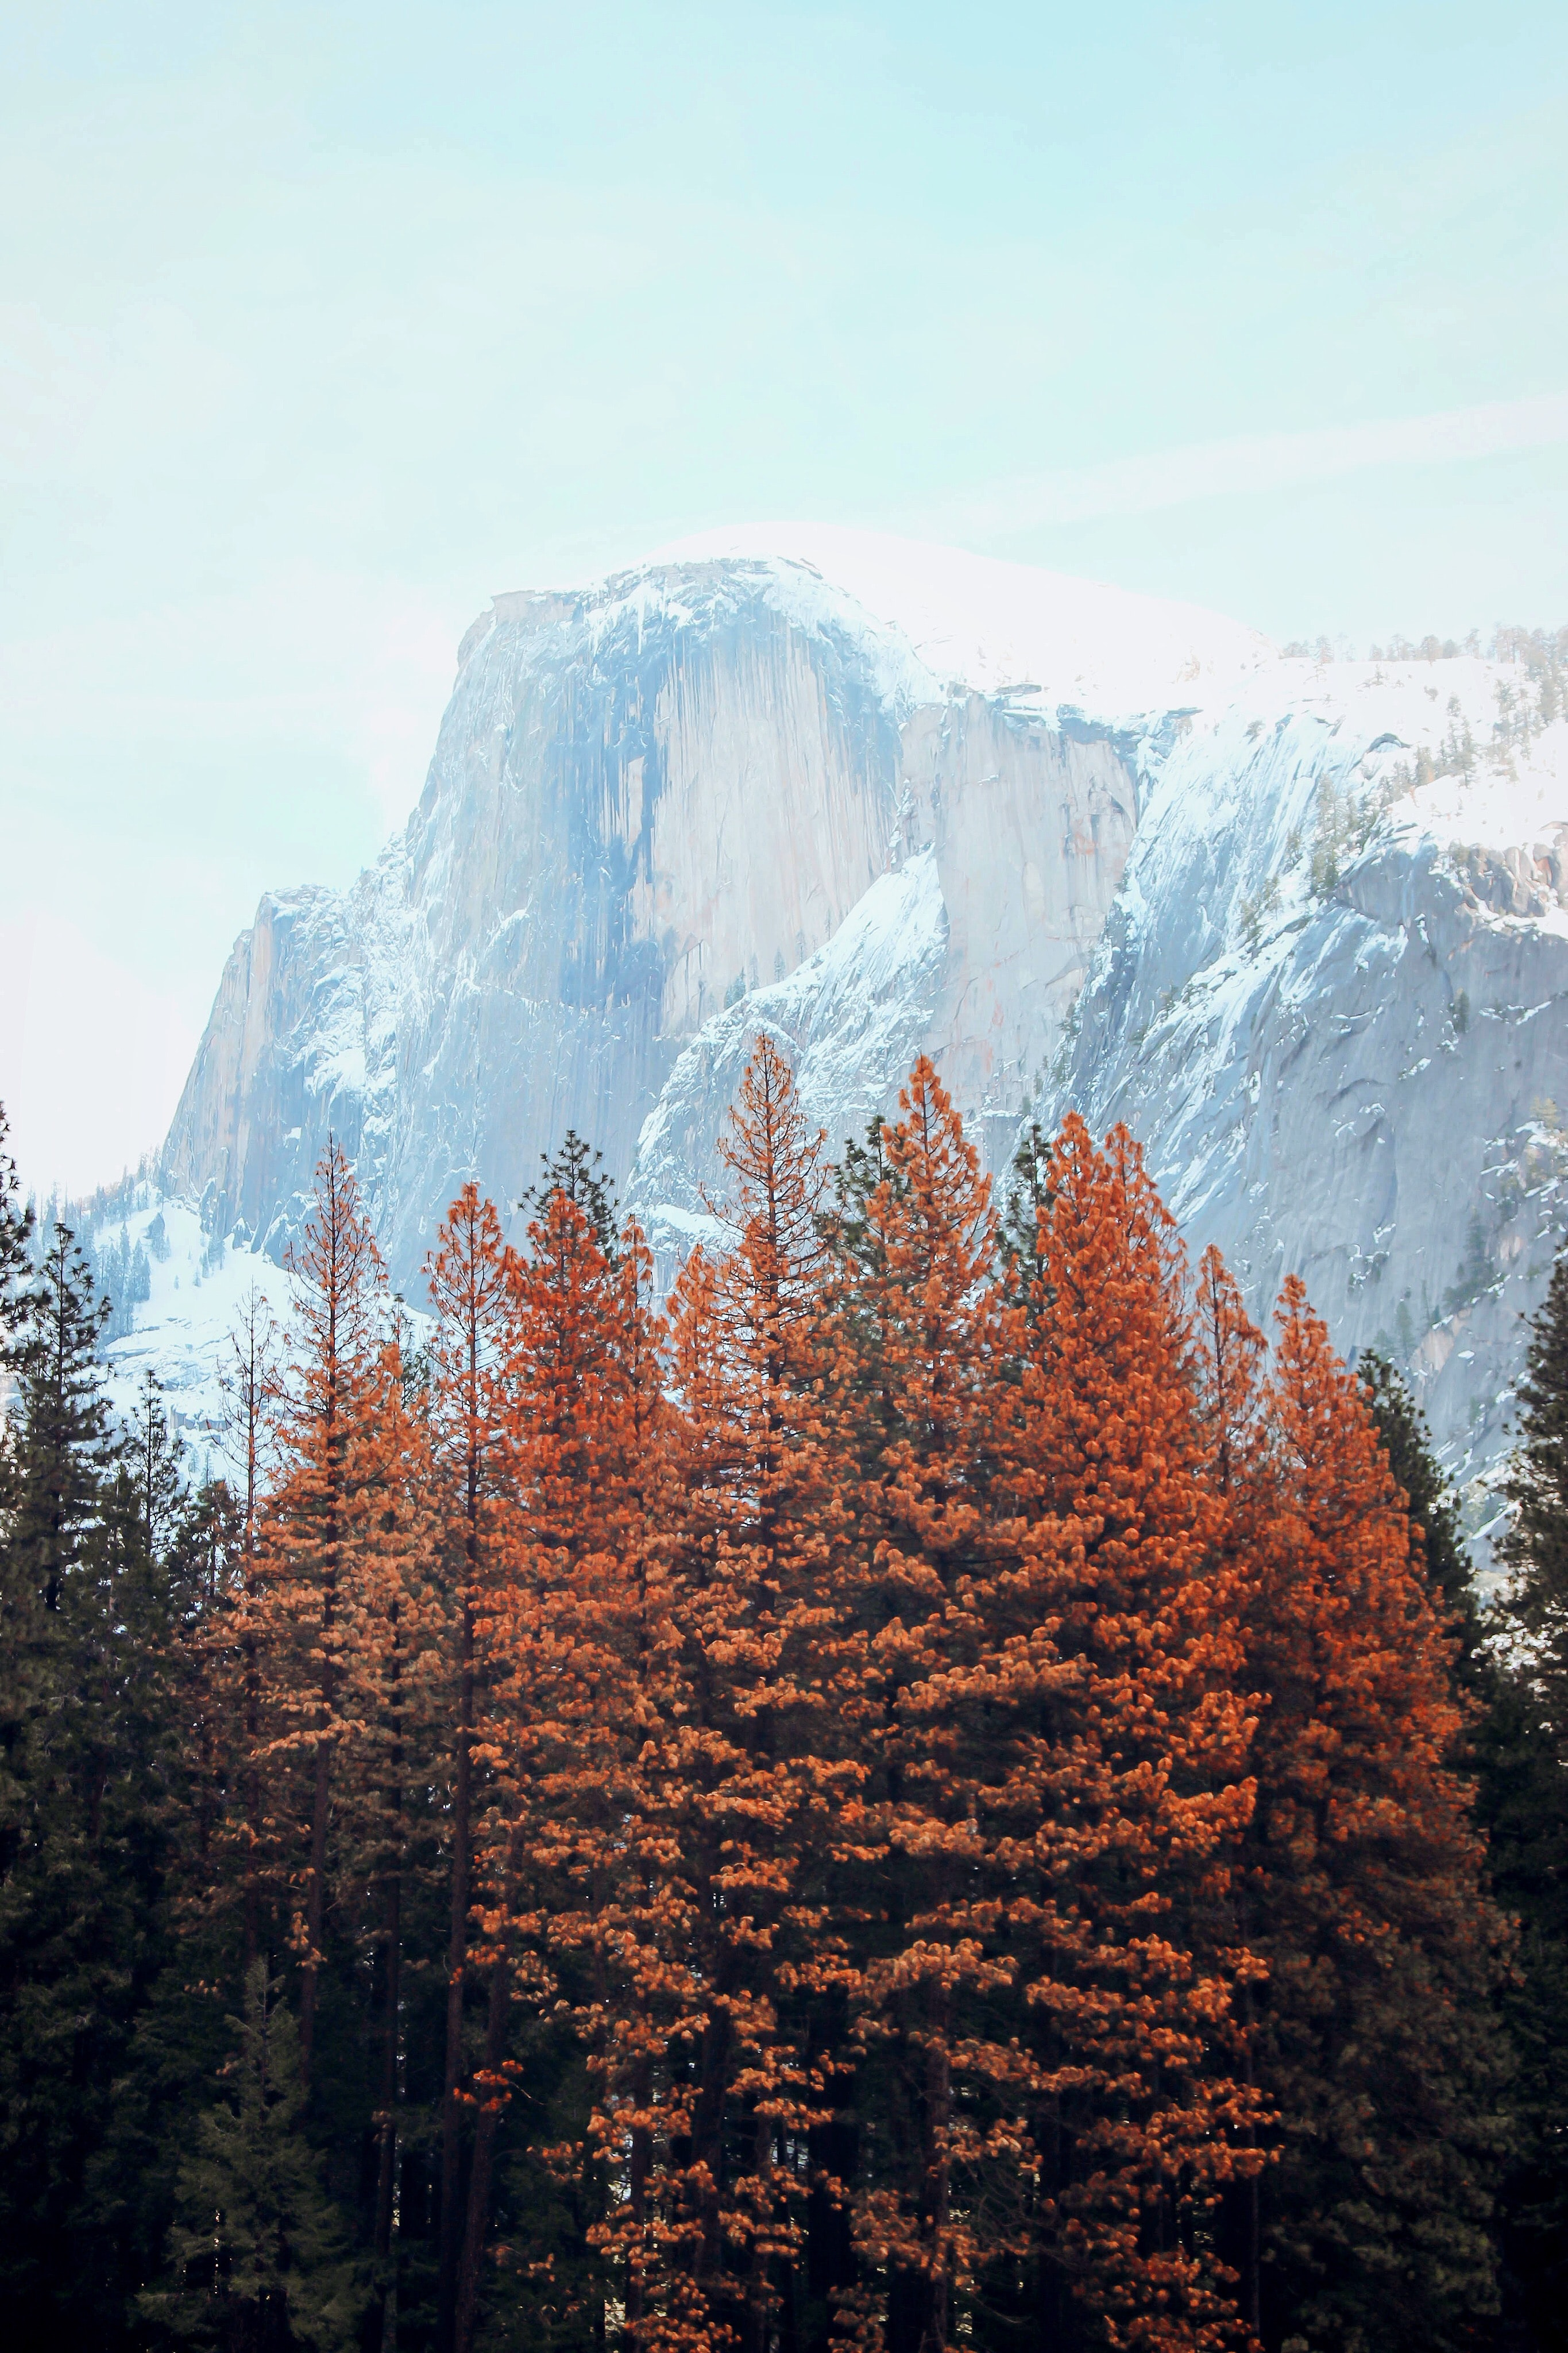 orange leafed trees with ice capped mountain background